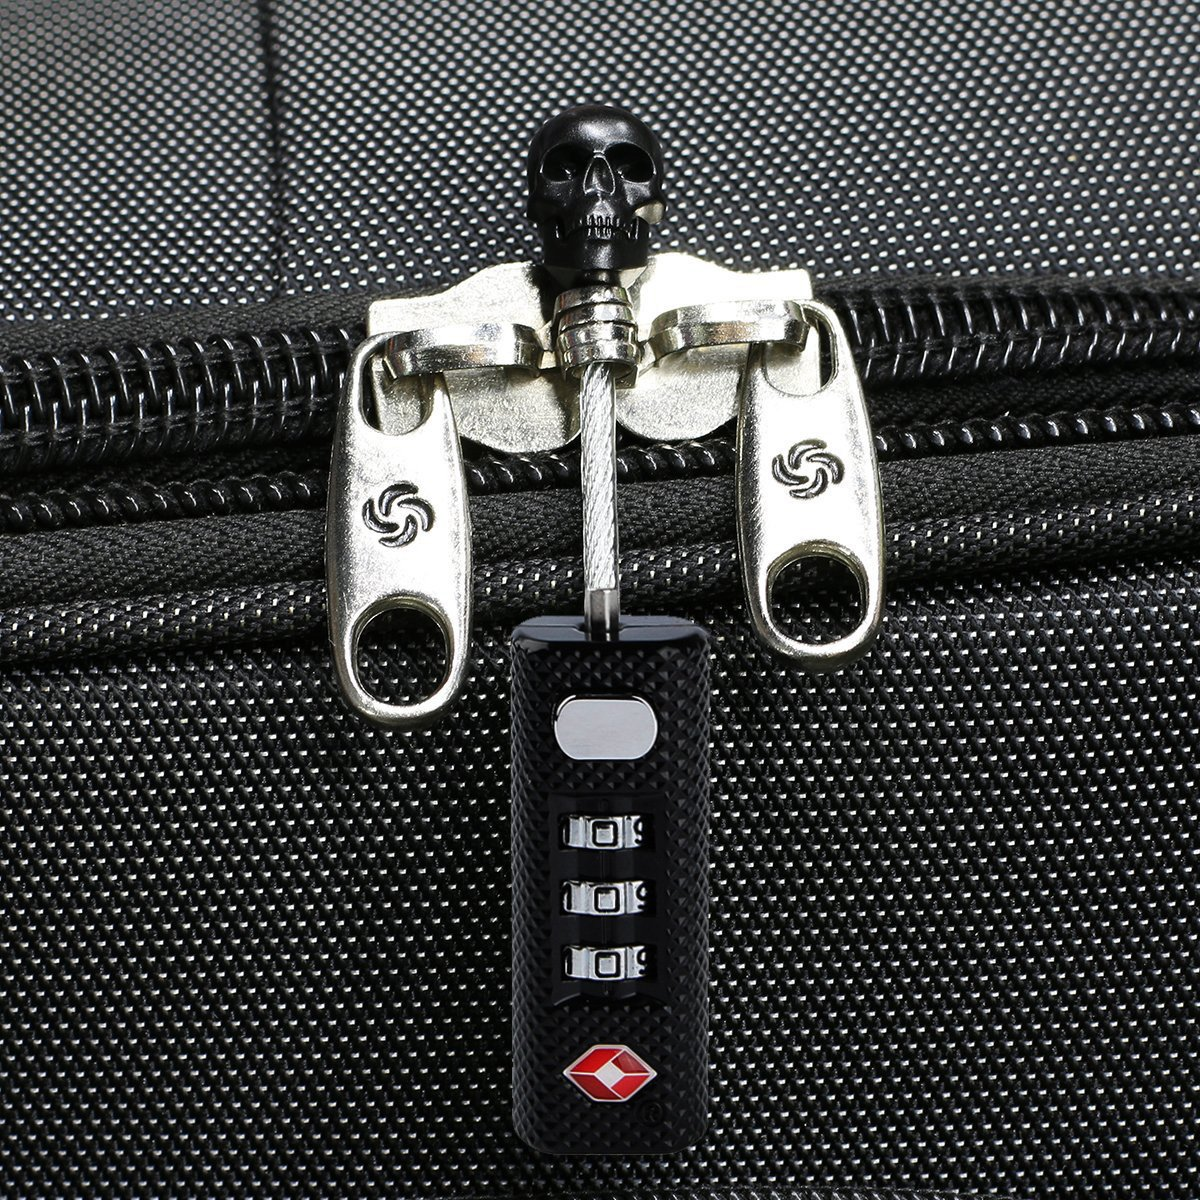 TSA Luggage Lock 2 Pack - Mini Travel Lock - 3 Digit Combination - TSA Approved for Suitcase, Backpack, GYM Lockers, Cabinets, Toolbox and More